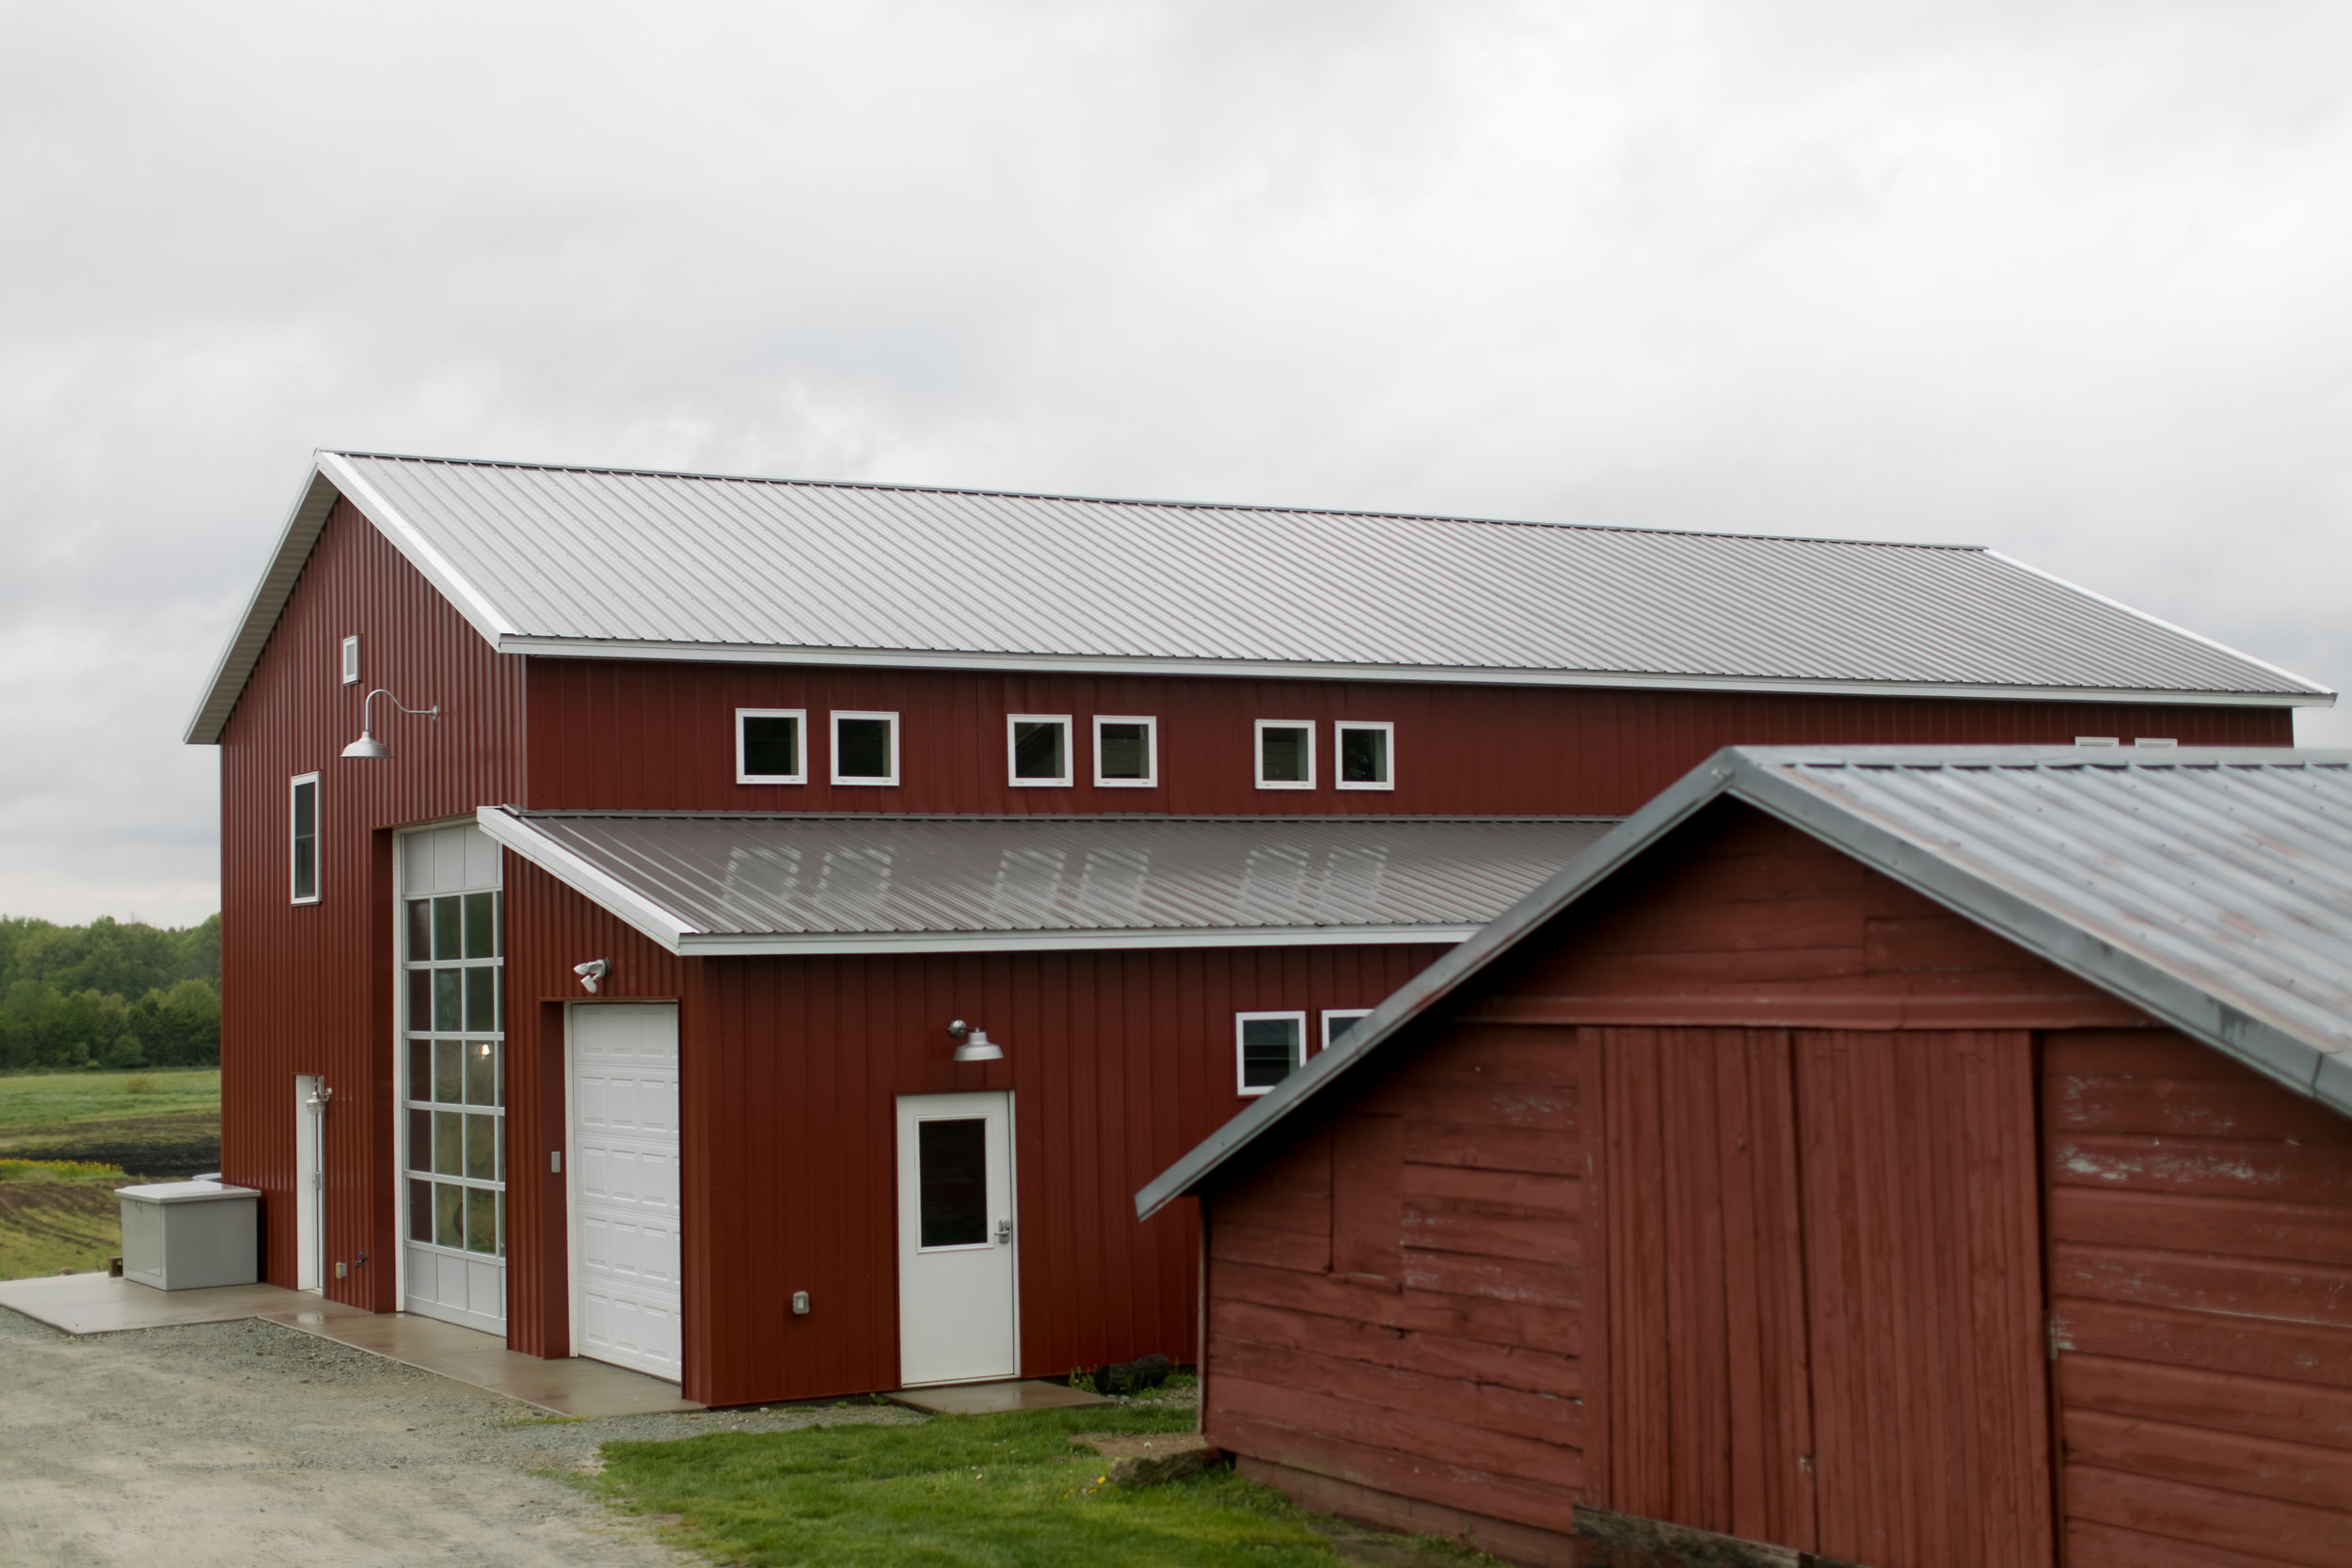 The Lake Max Loft, situated in the Big Red Barn, is an ideal space to accommodate your wedding party. Built new in 2014, a modern structure with a rustic feel perfect for getting ready. It's clean modern design and natural light is a wedding photographer's dream.